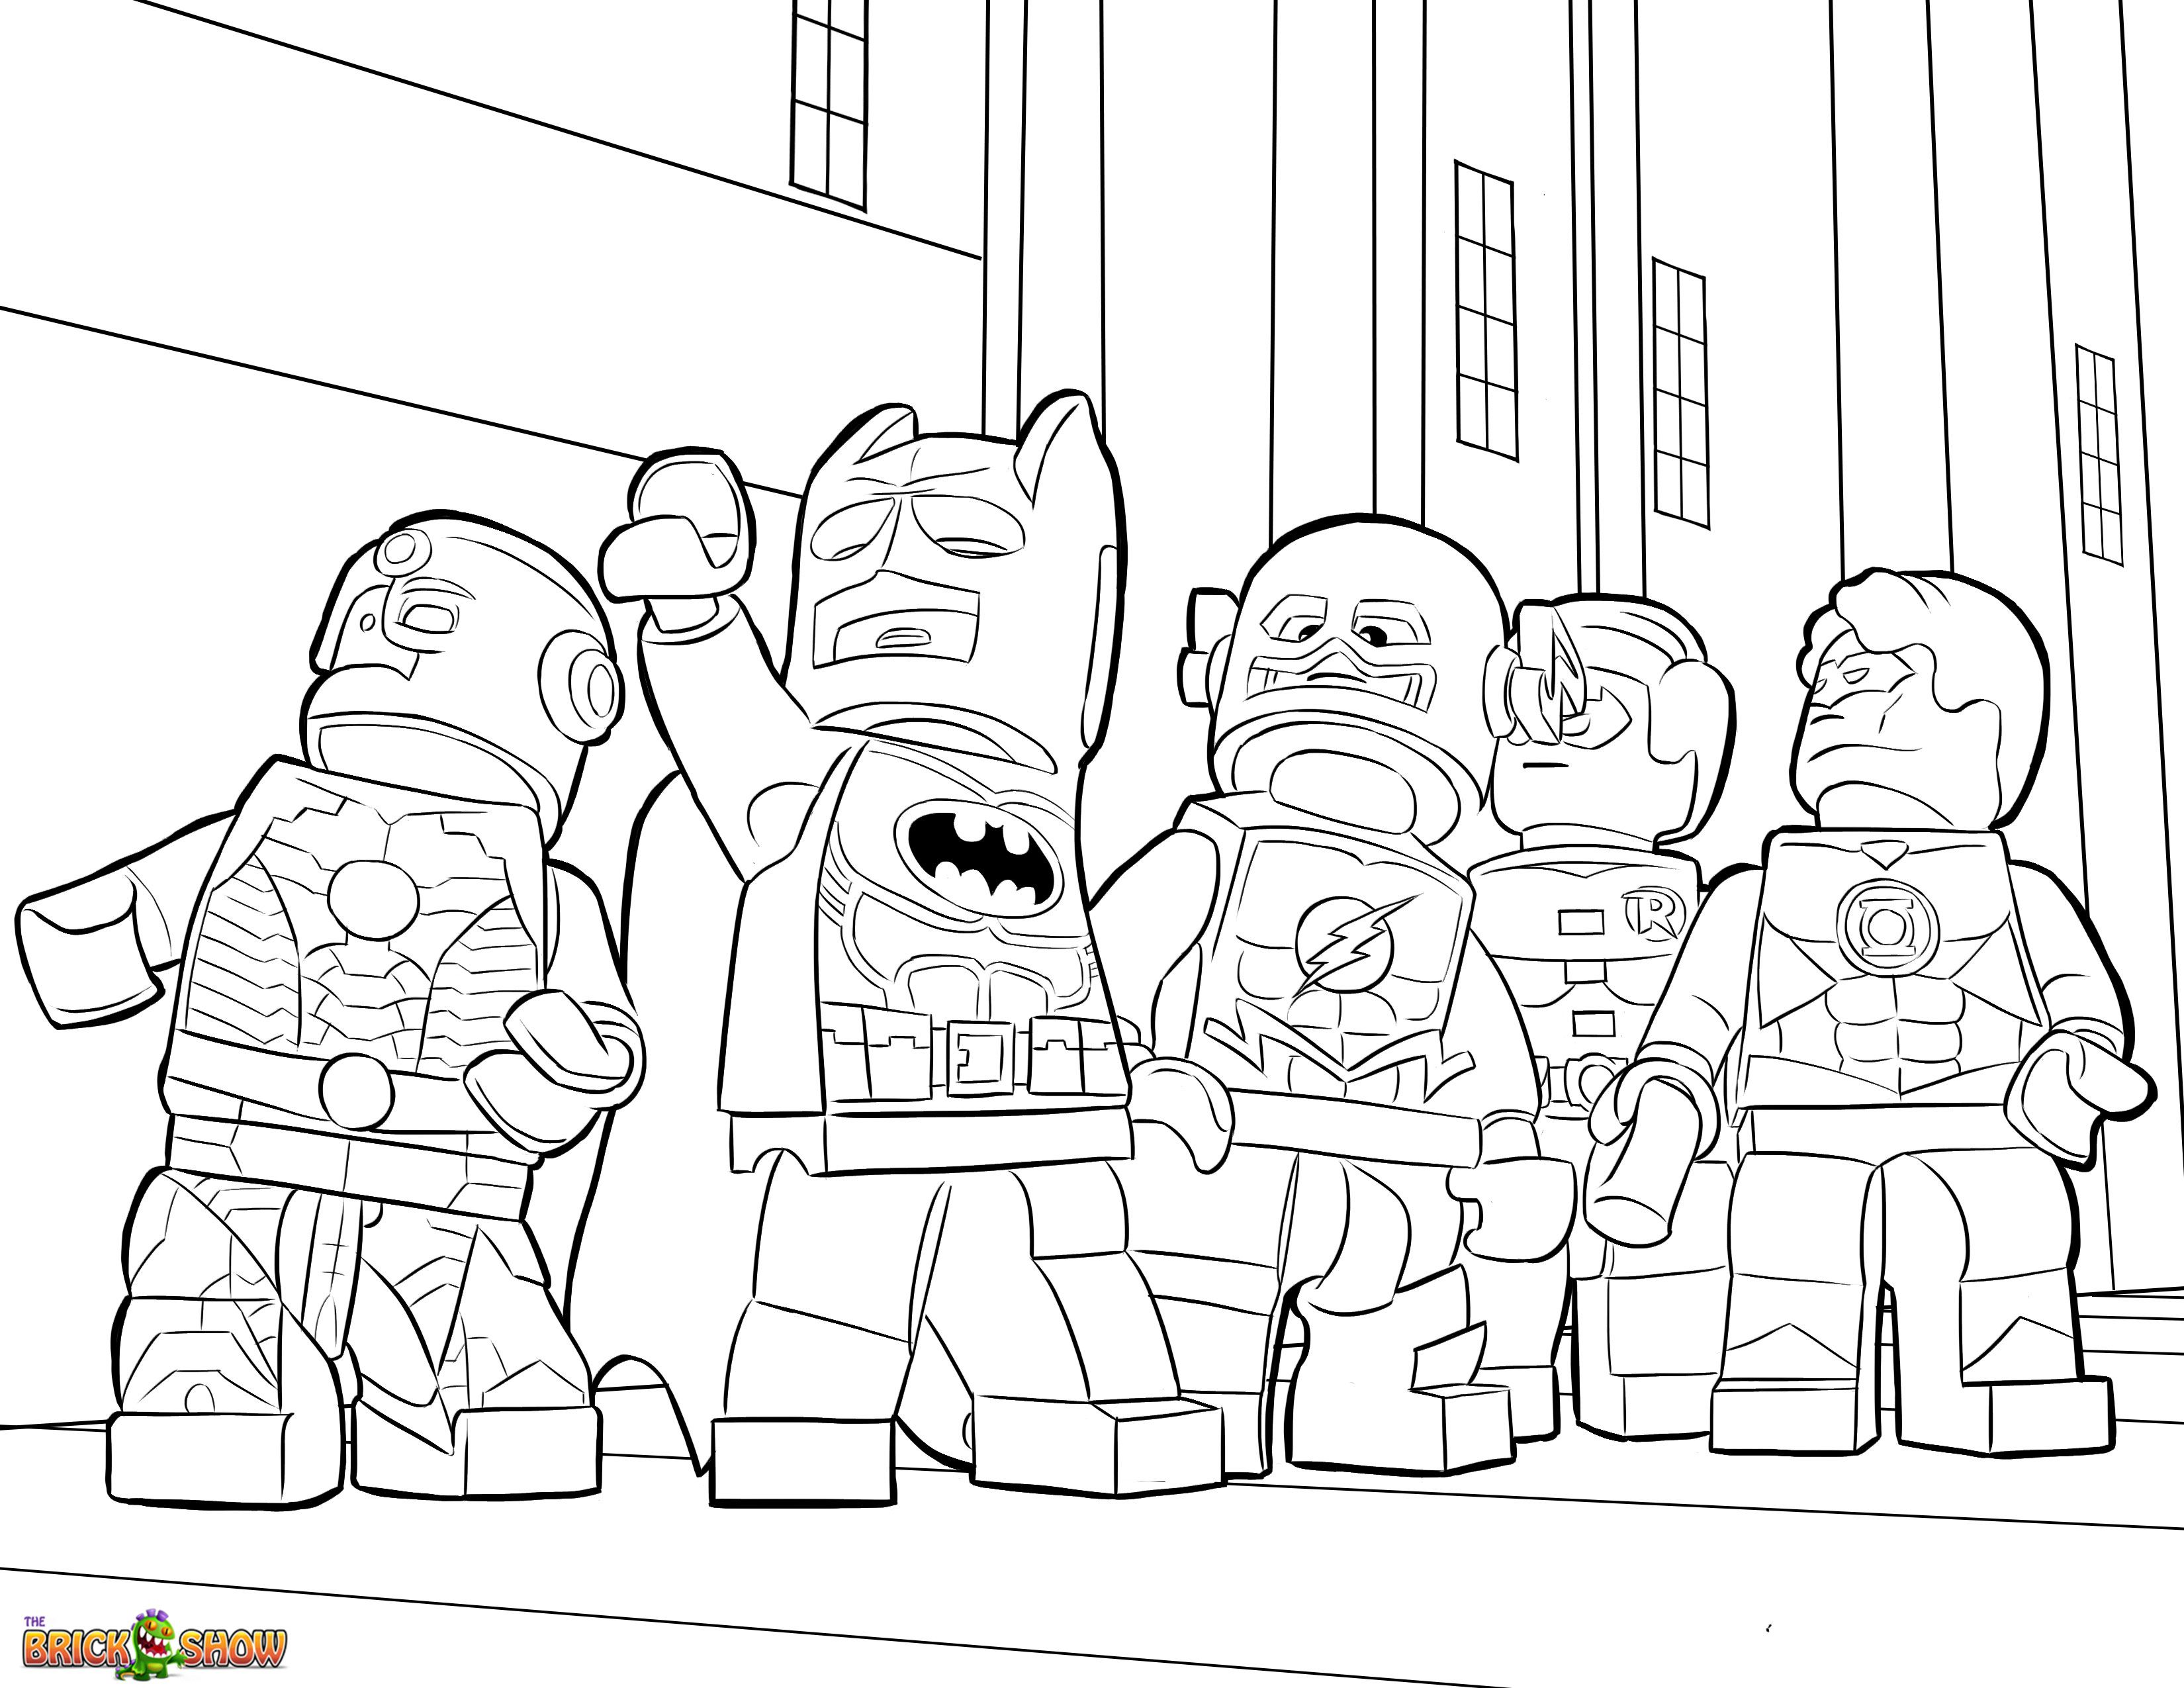 3300x2550 The Lego Movie Coloring Page, Lego Lego Justice League Printable